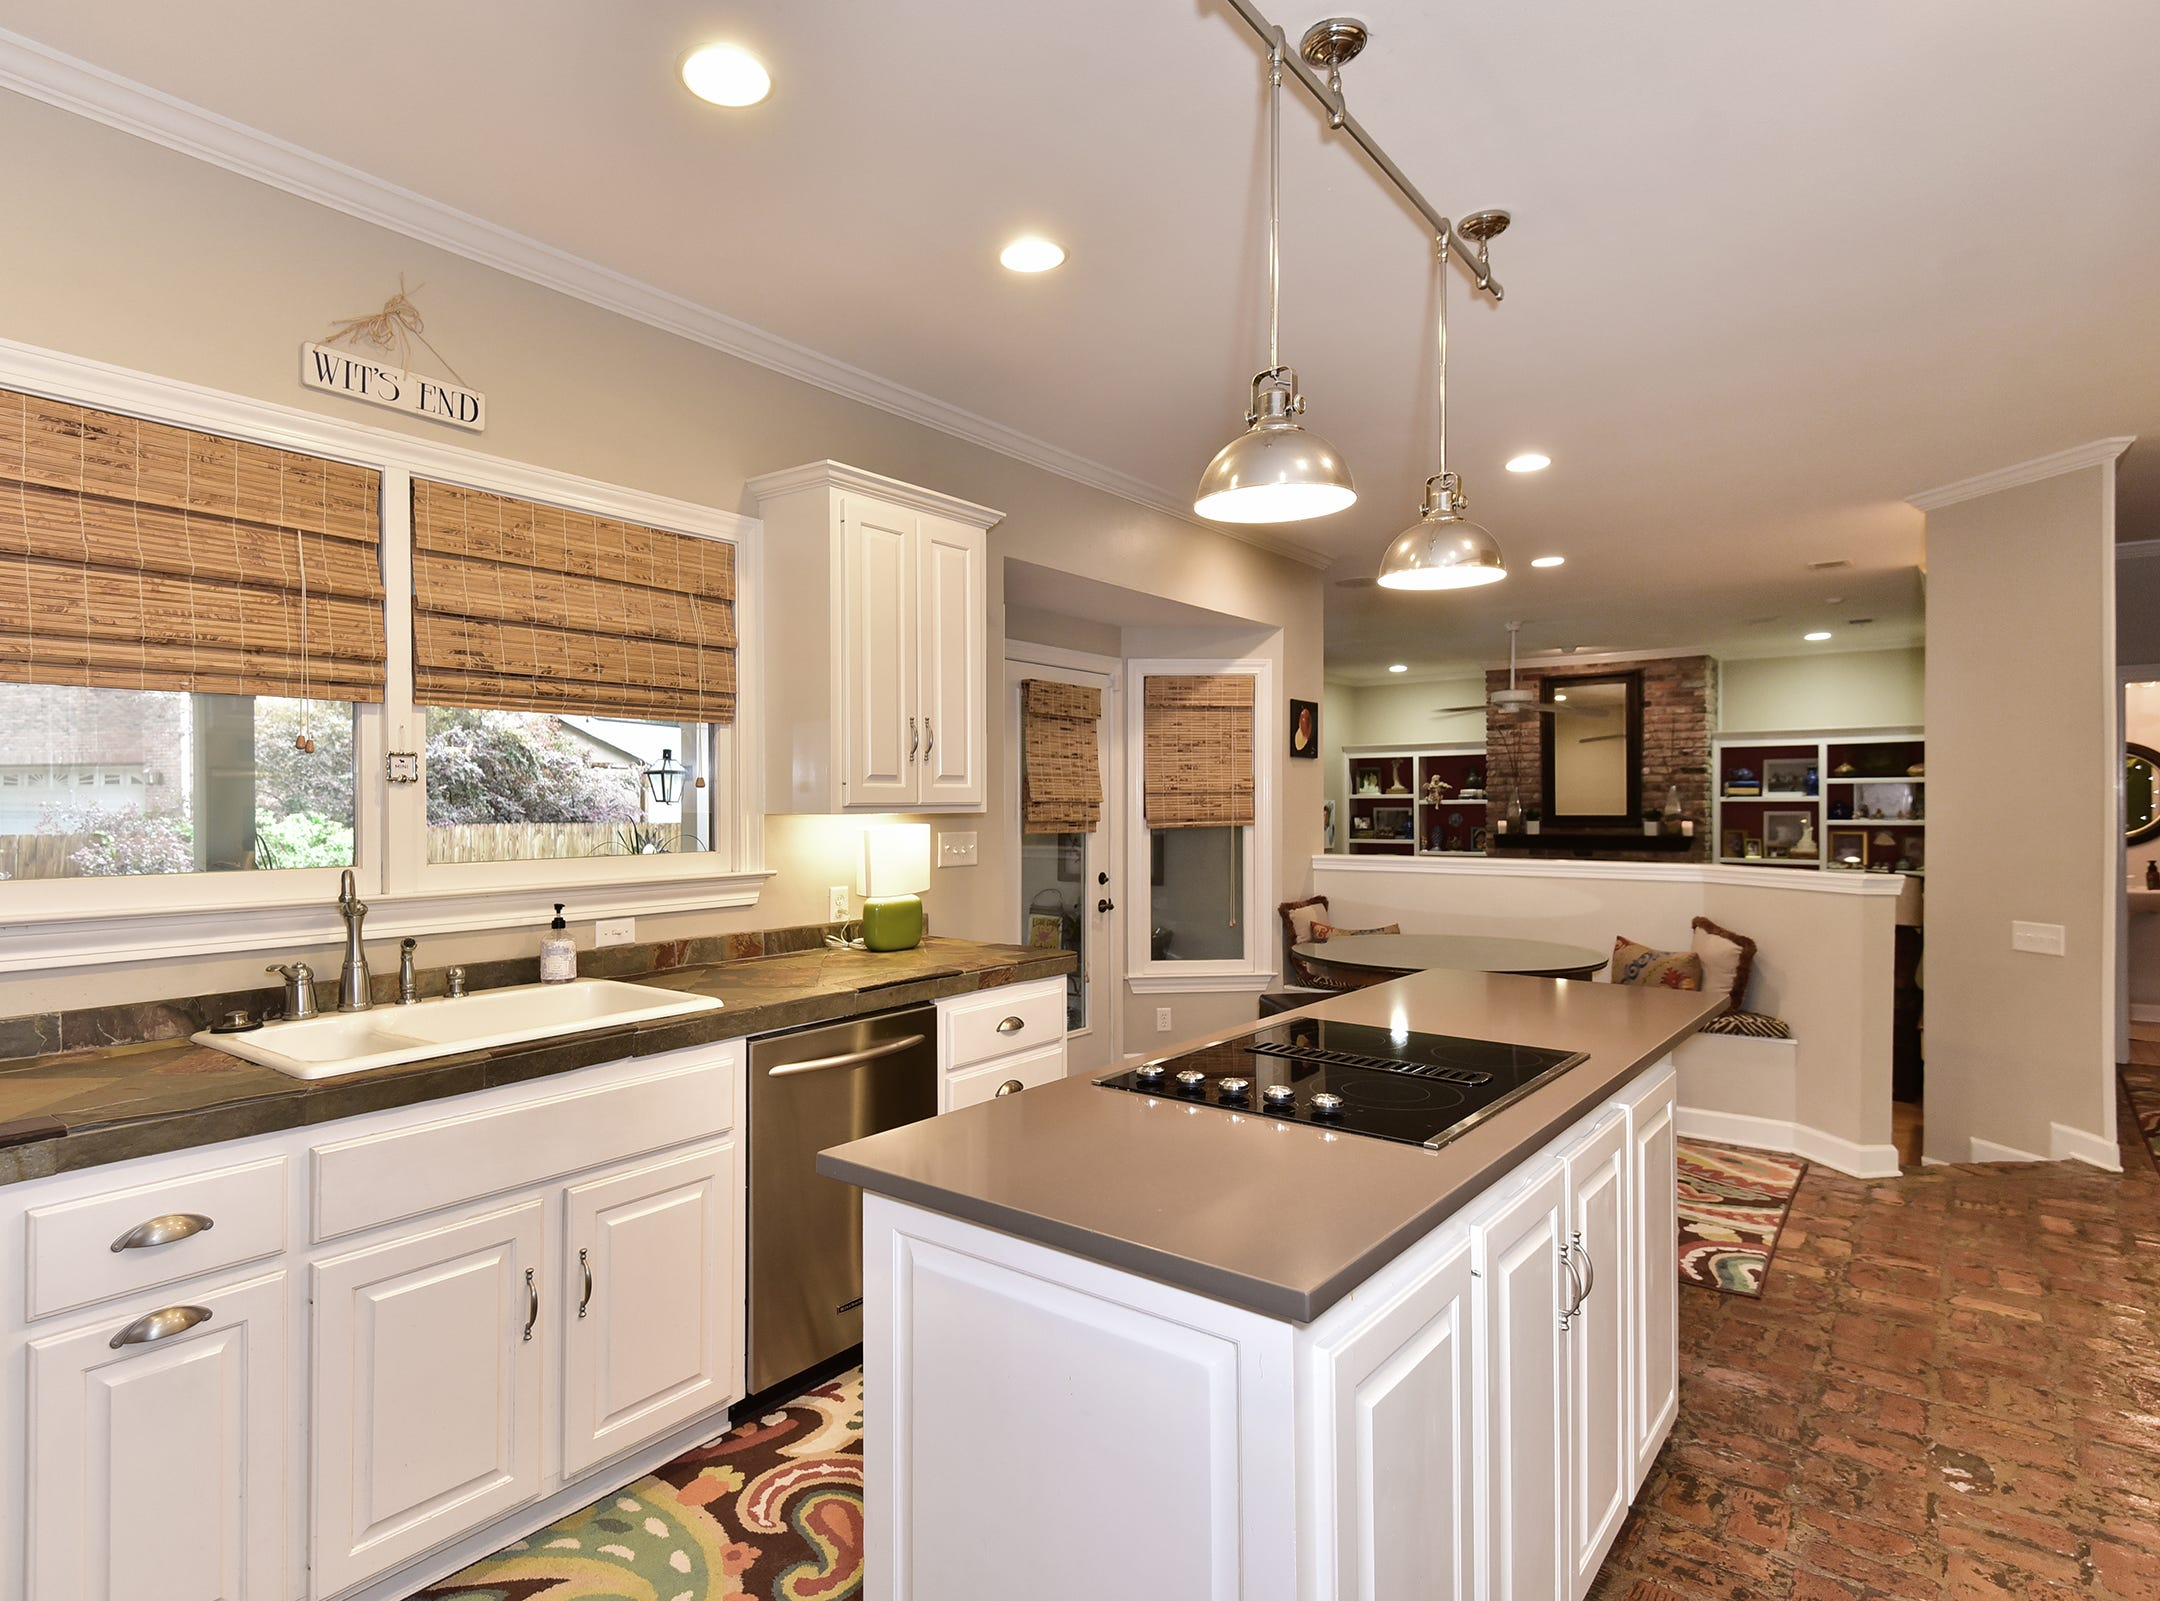 2474 Semur Rd., the kitchen includes a large island and is brimming with natural light.